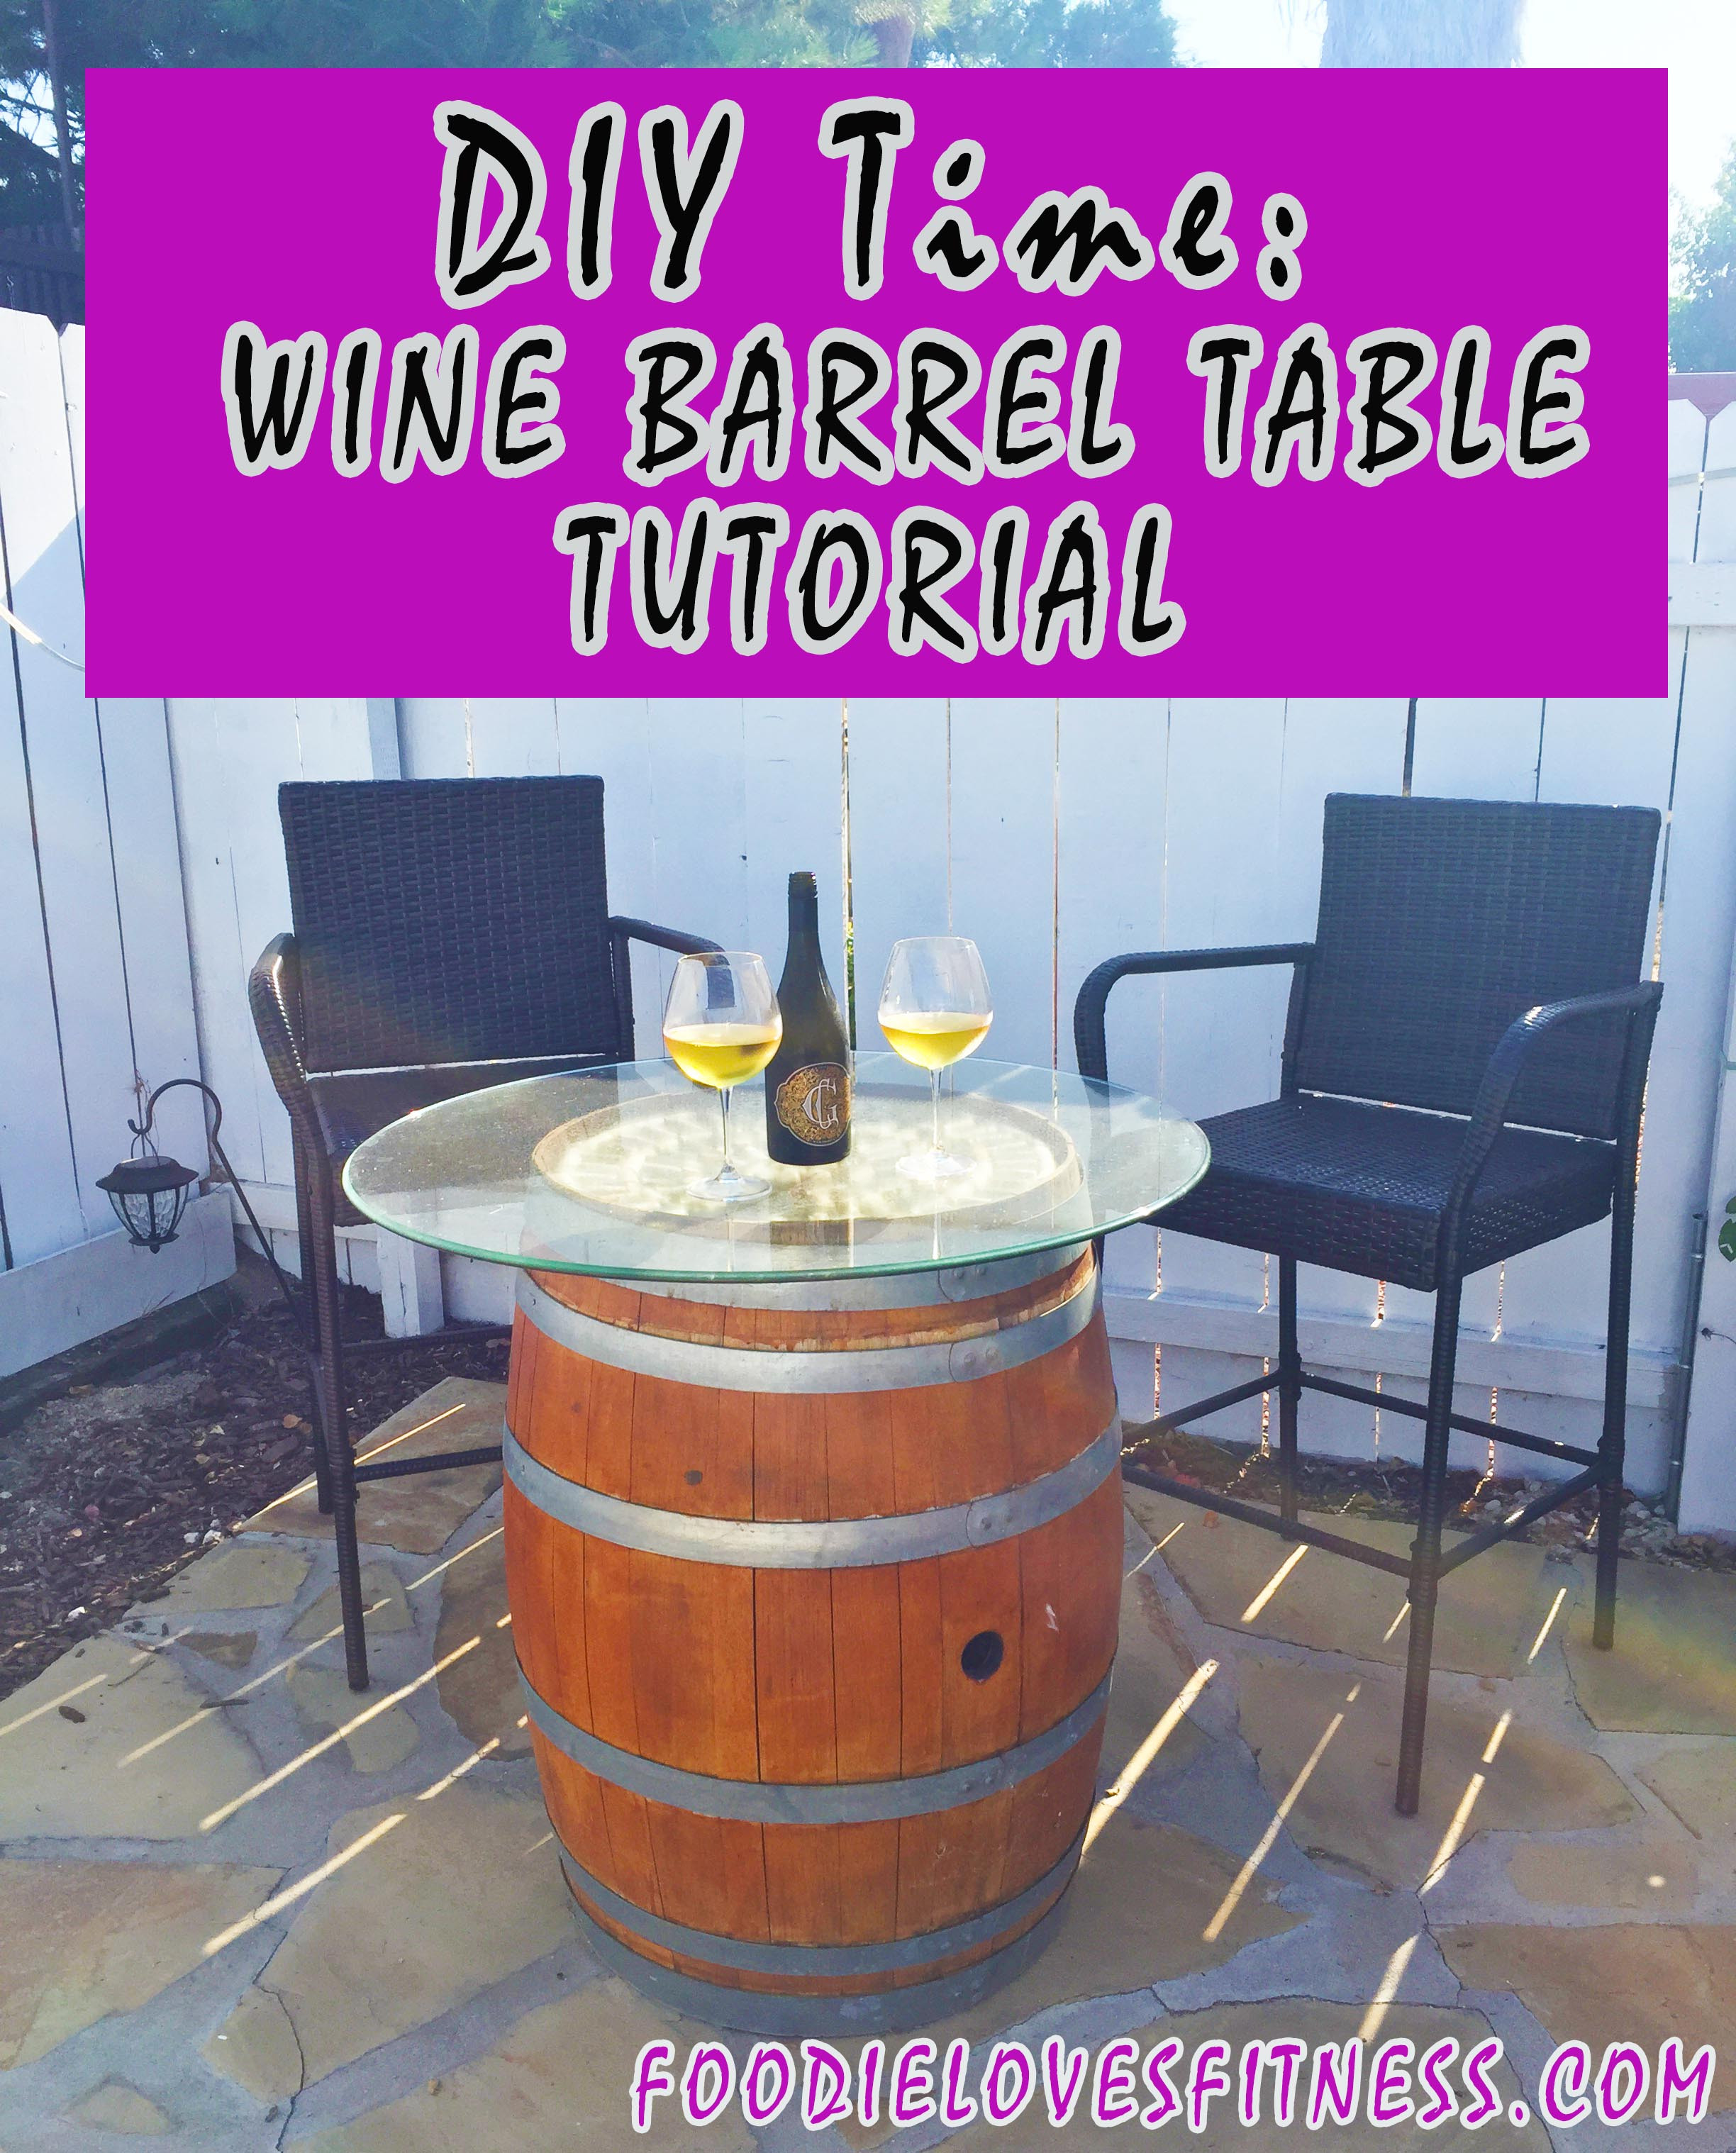 Best ideas about DIY Wine Barrel Table . Save or Pin DIY Time Wine Barrel Cocktail Table Tutorial • Foo Now.